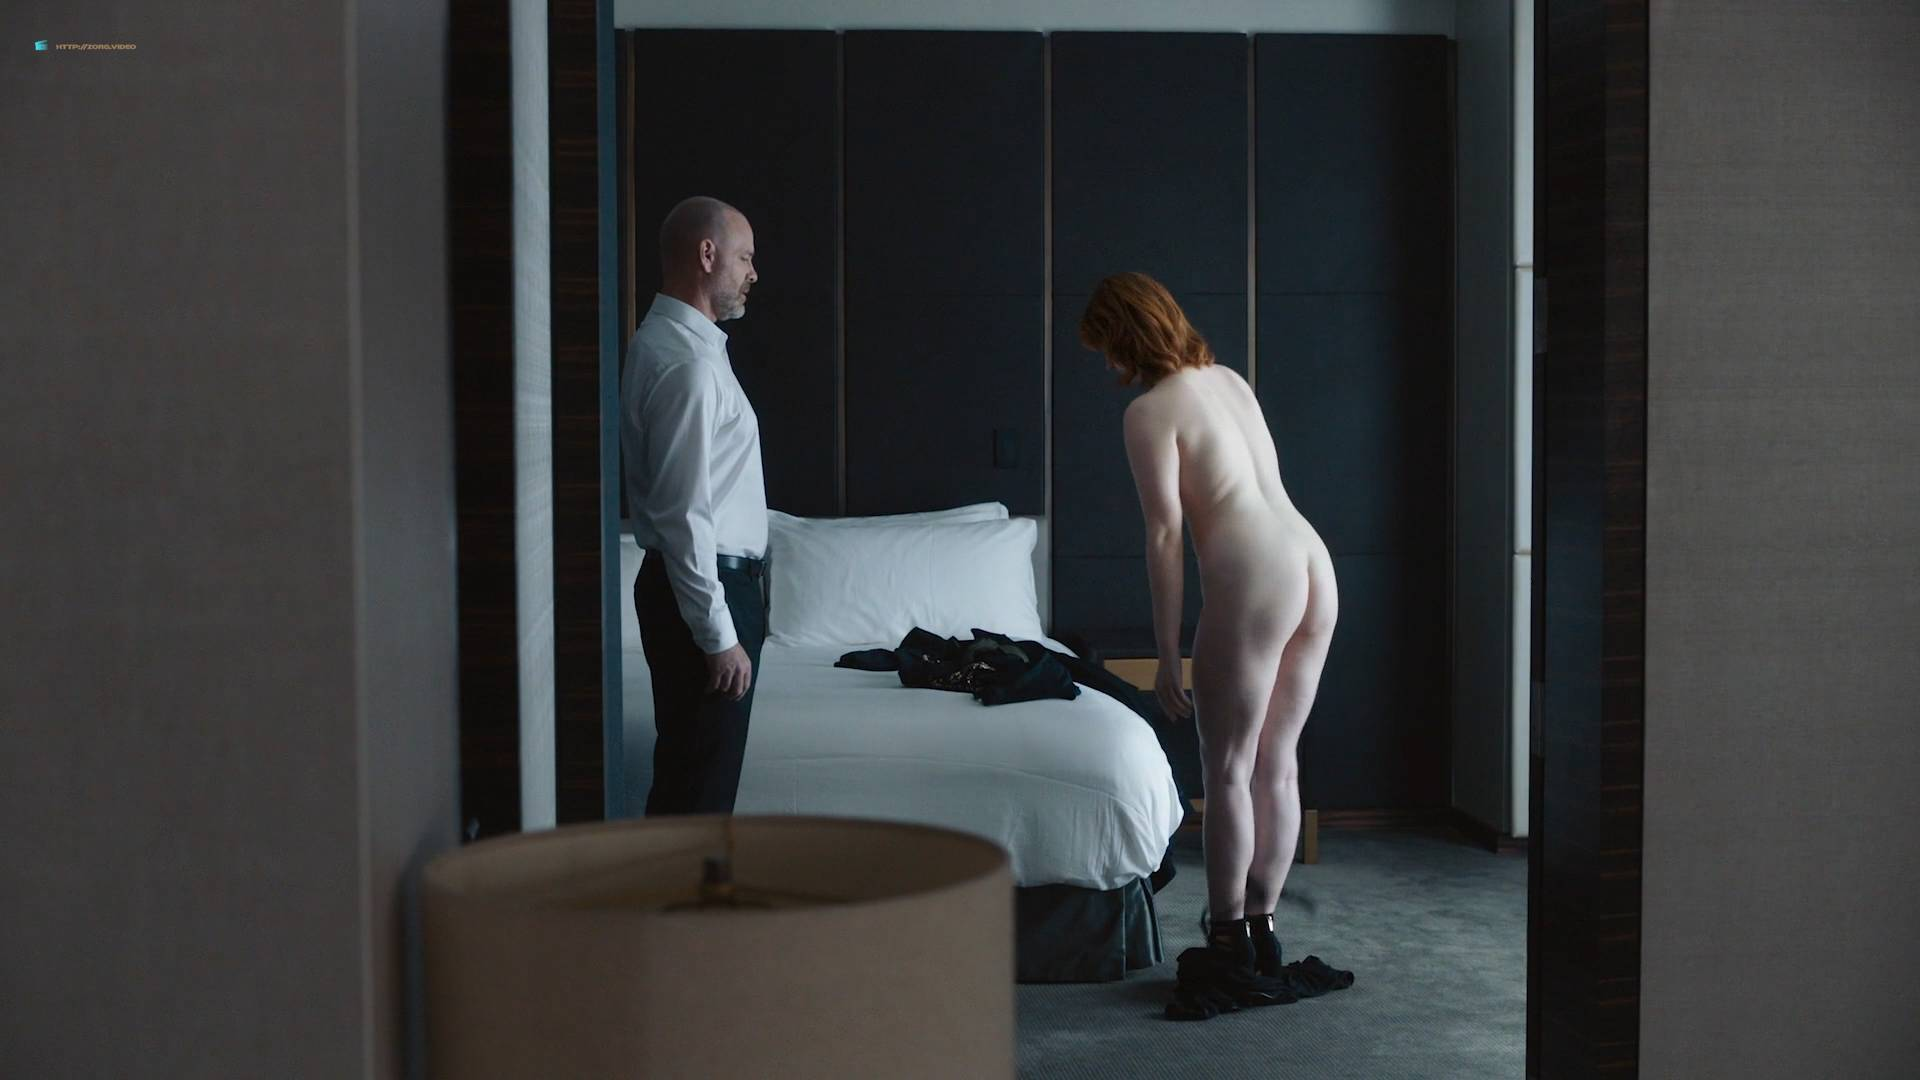 Louisa-Krause-nude-butt-and-oral-Gillian-Williams-nude-oral-too-The-Girlfriend-Experience-2017-s2e1-HD-1080p-Web-07.jpg